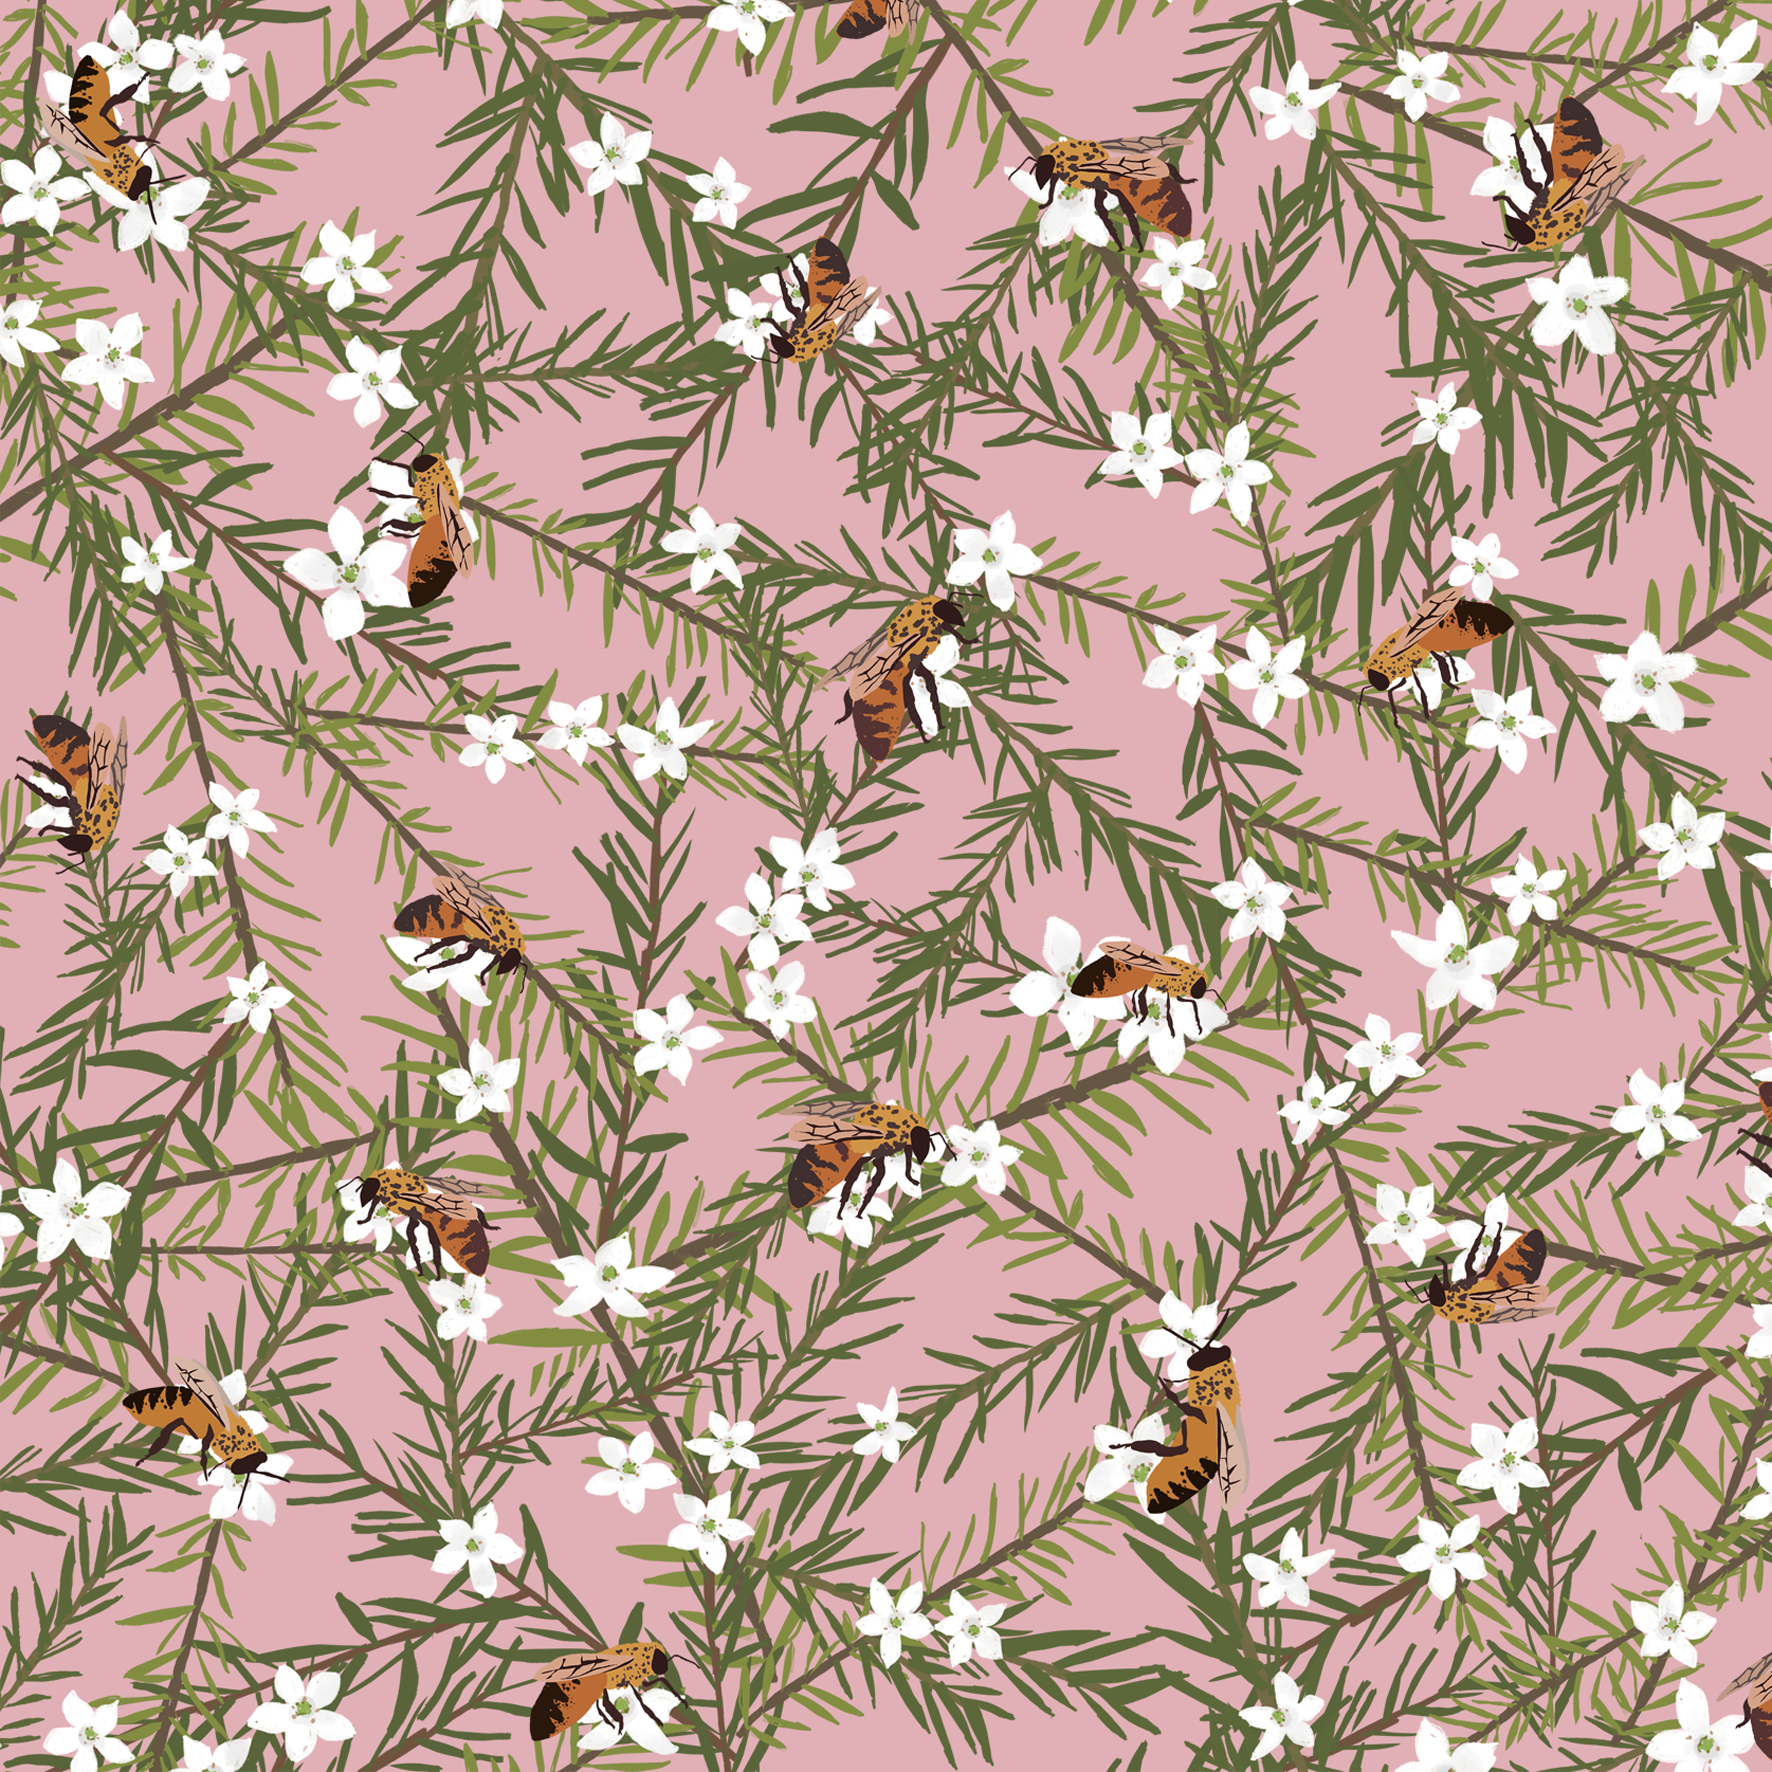 melissa boardman manuka and bees pattern pink.png